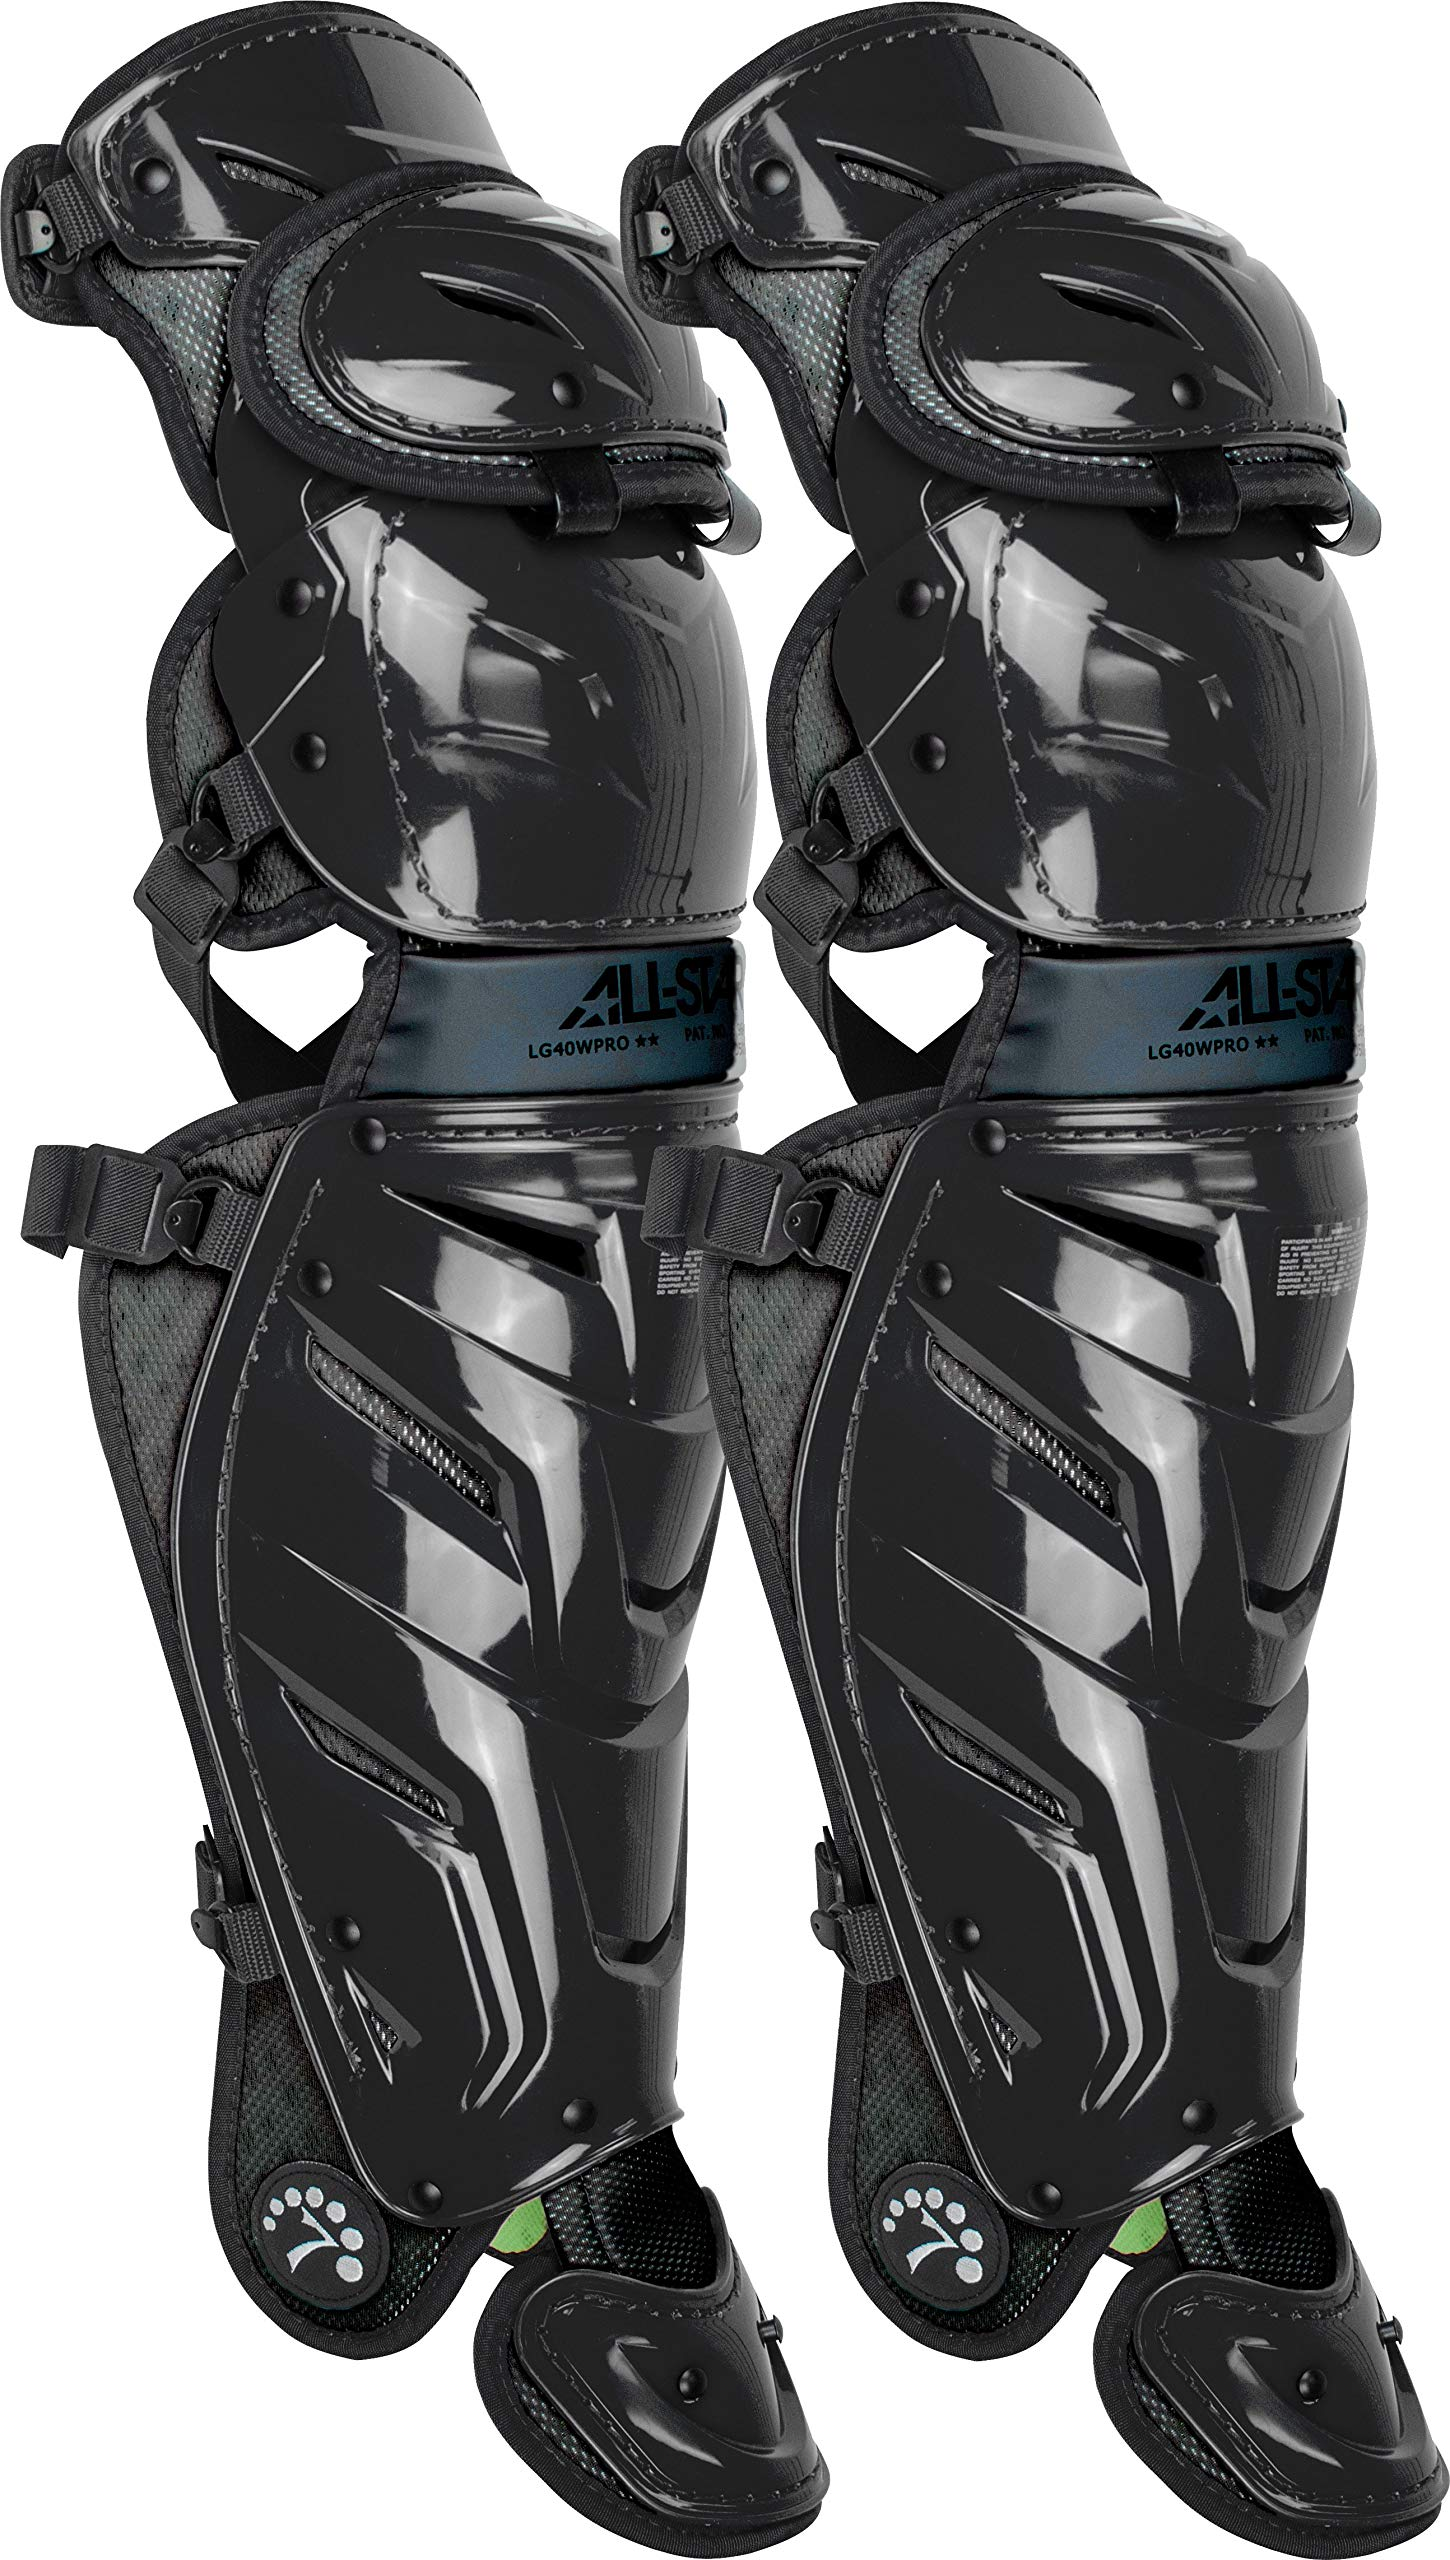 All-Star System 7 Axis Leg Guards Black